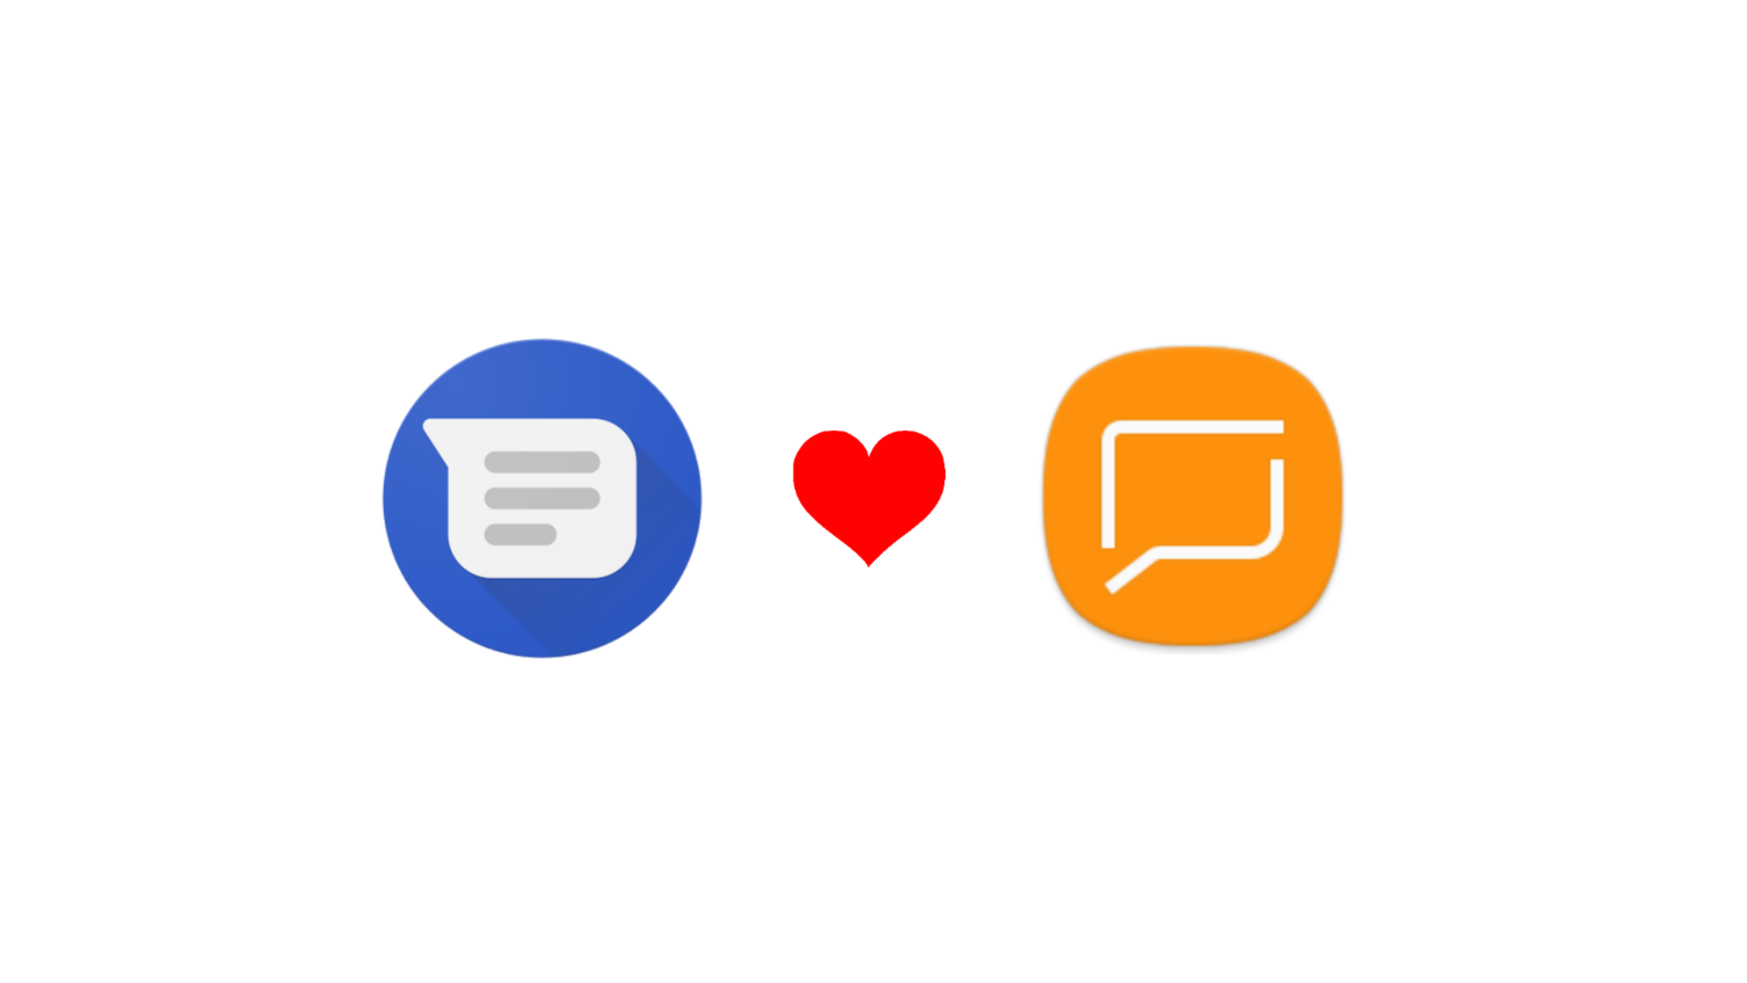 RCS features will work between Android Messages and Samsung Messages users